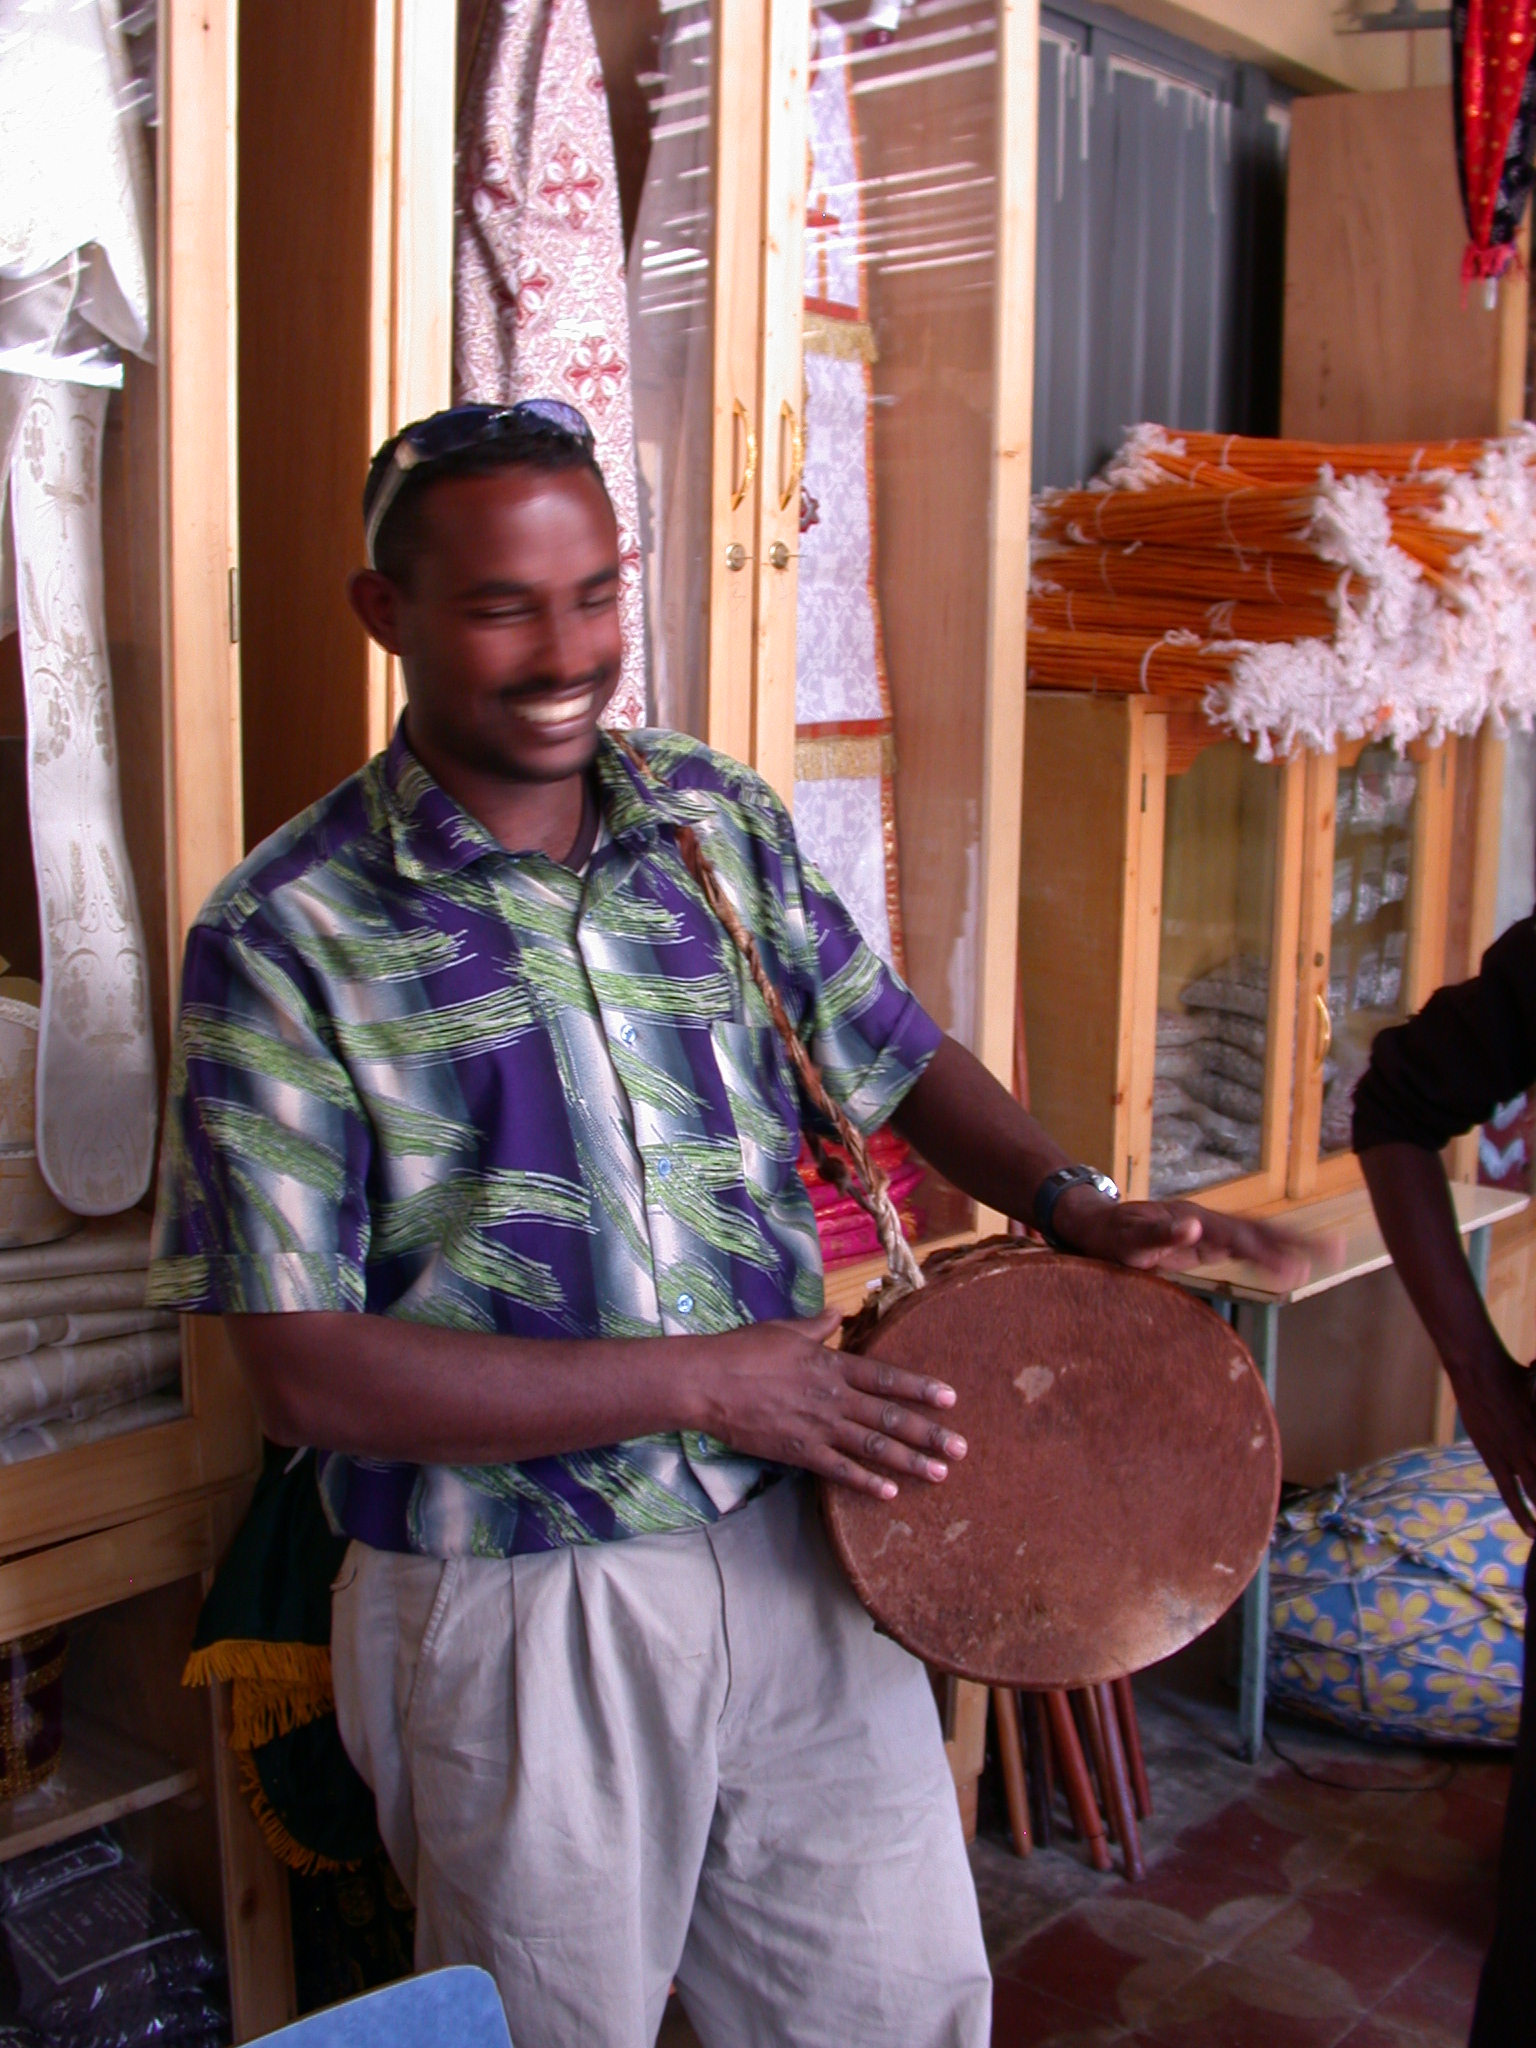 Tamir Drumming in Church Shop, Addis Ababa, Ethiopia